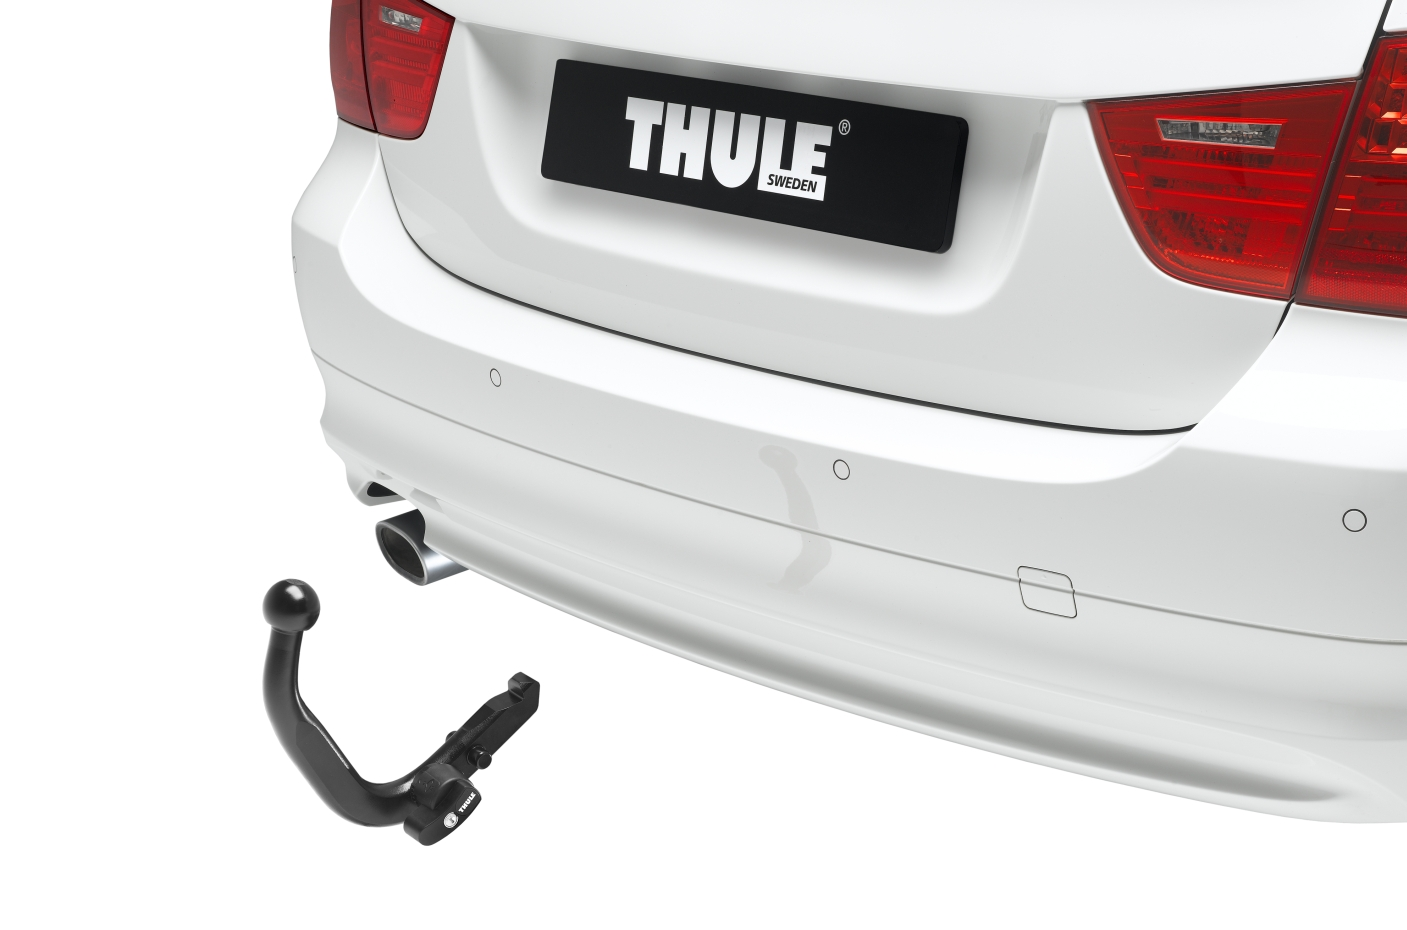 thule detachable towbar bma 13 pol e kit seat leon 1p1. Black Bedroom Furniture Sets. Home Design Ideas